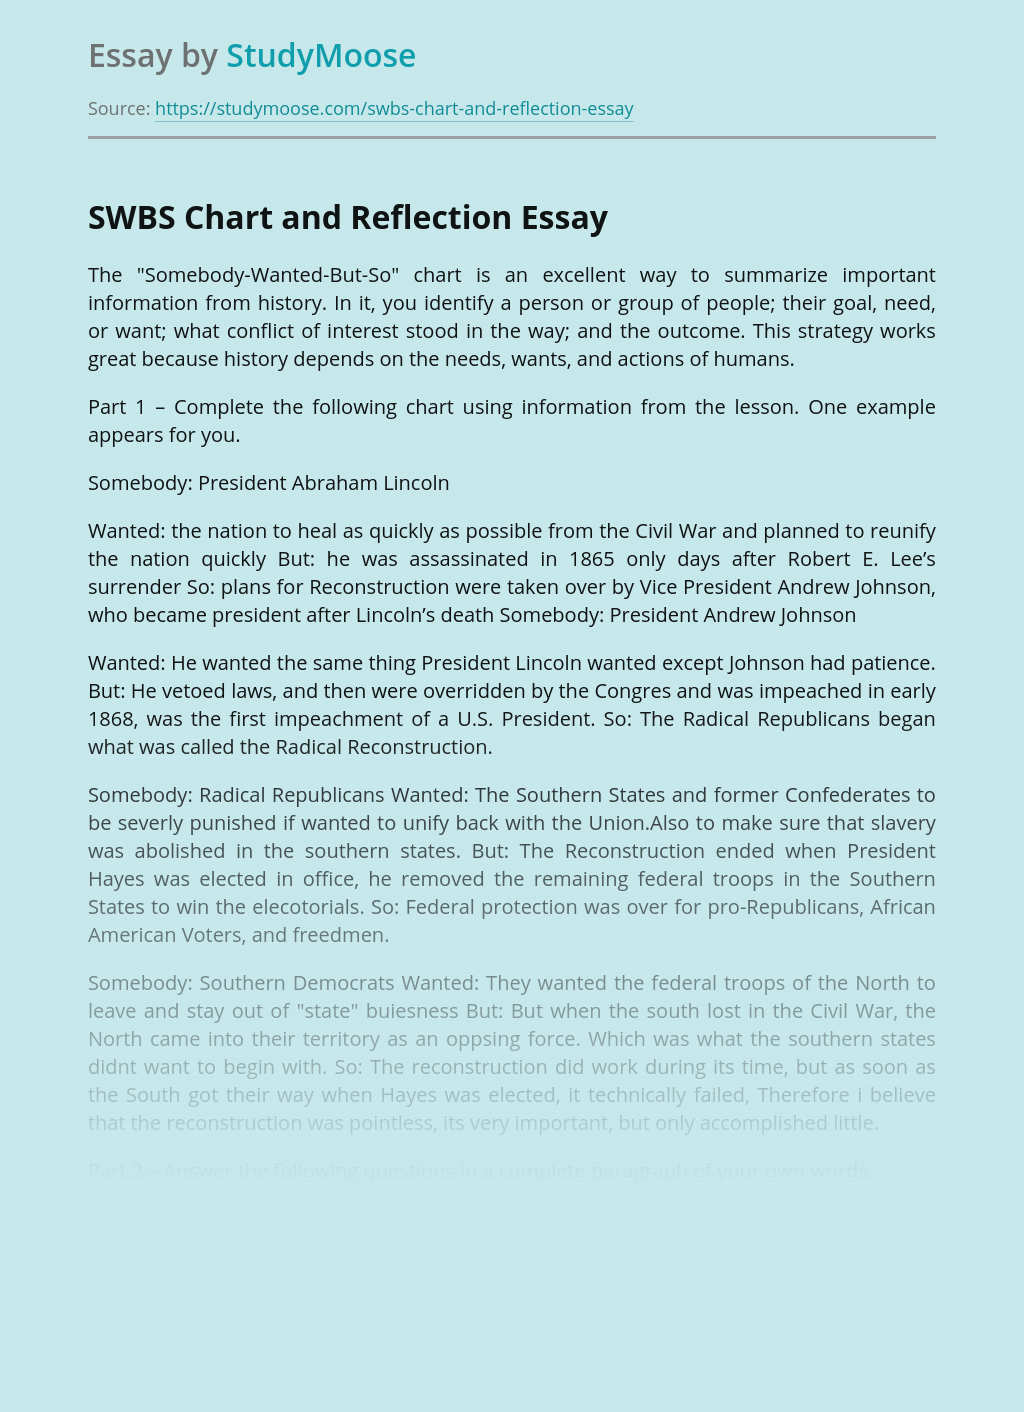 SWBS Chart and Reflection